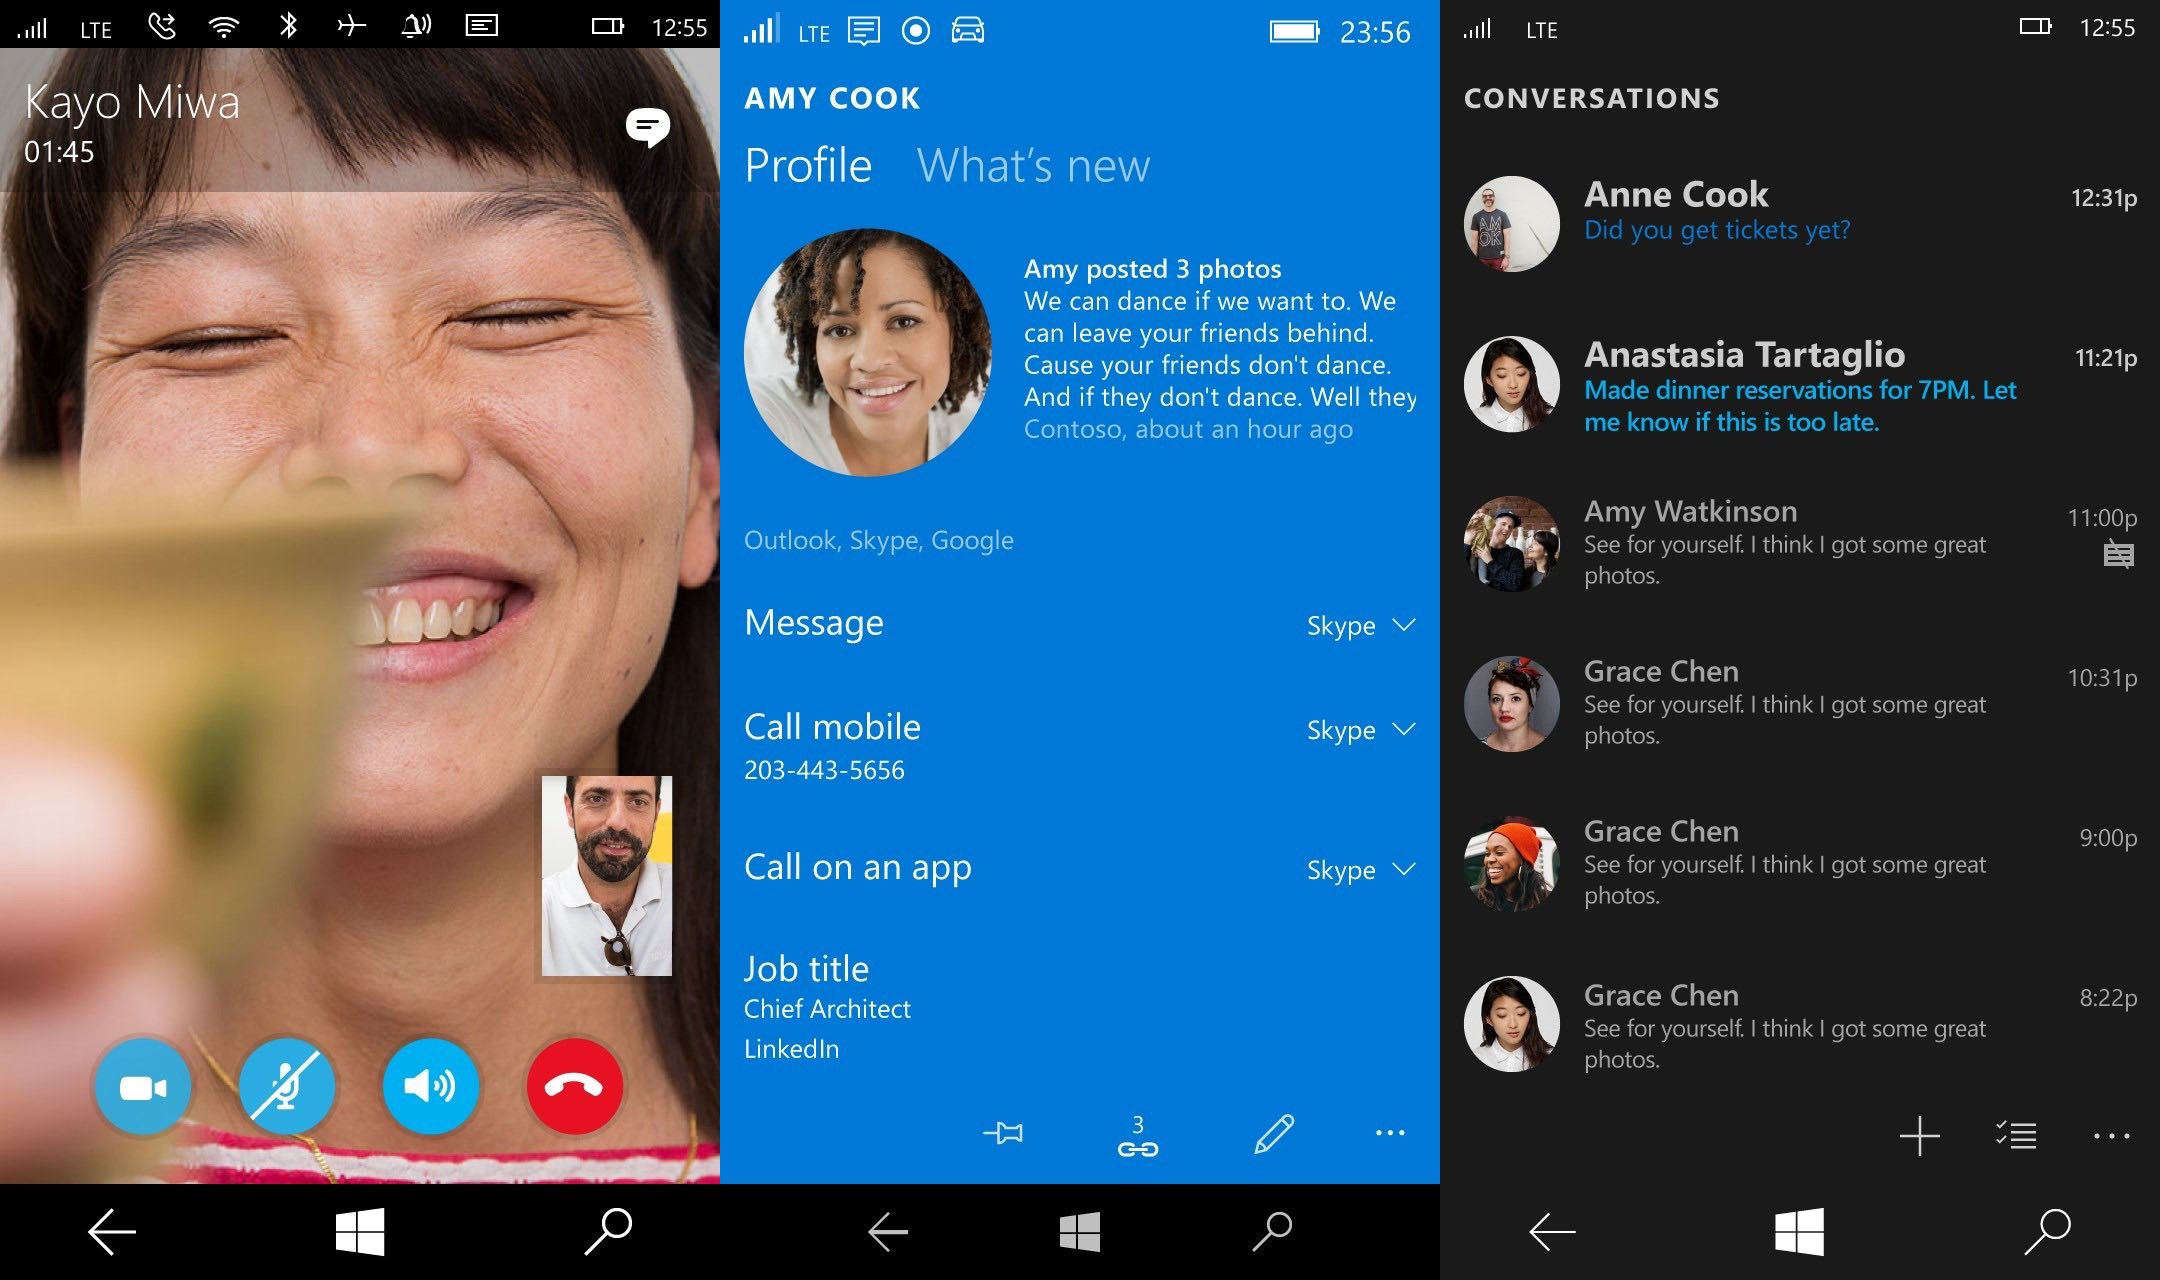 Skype for windows 8 now supports file transfer between users.